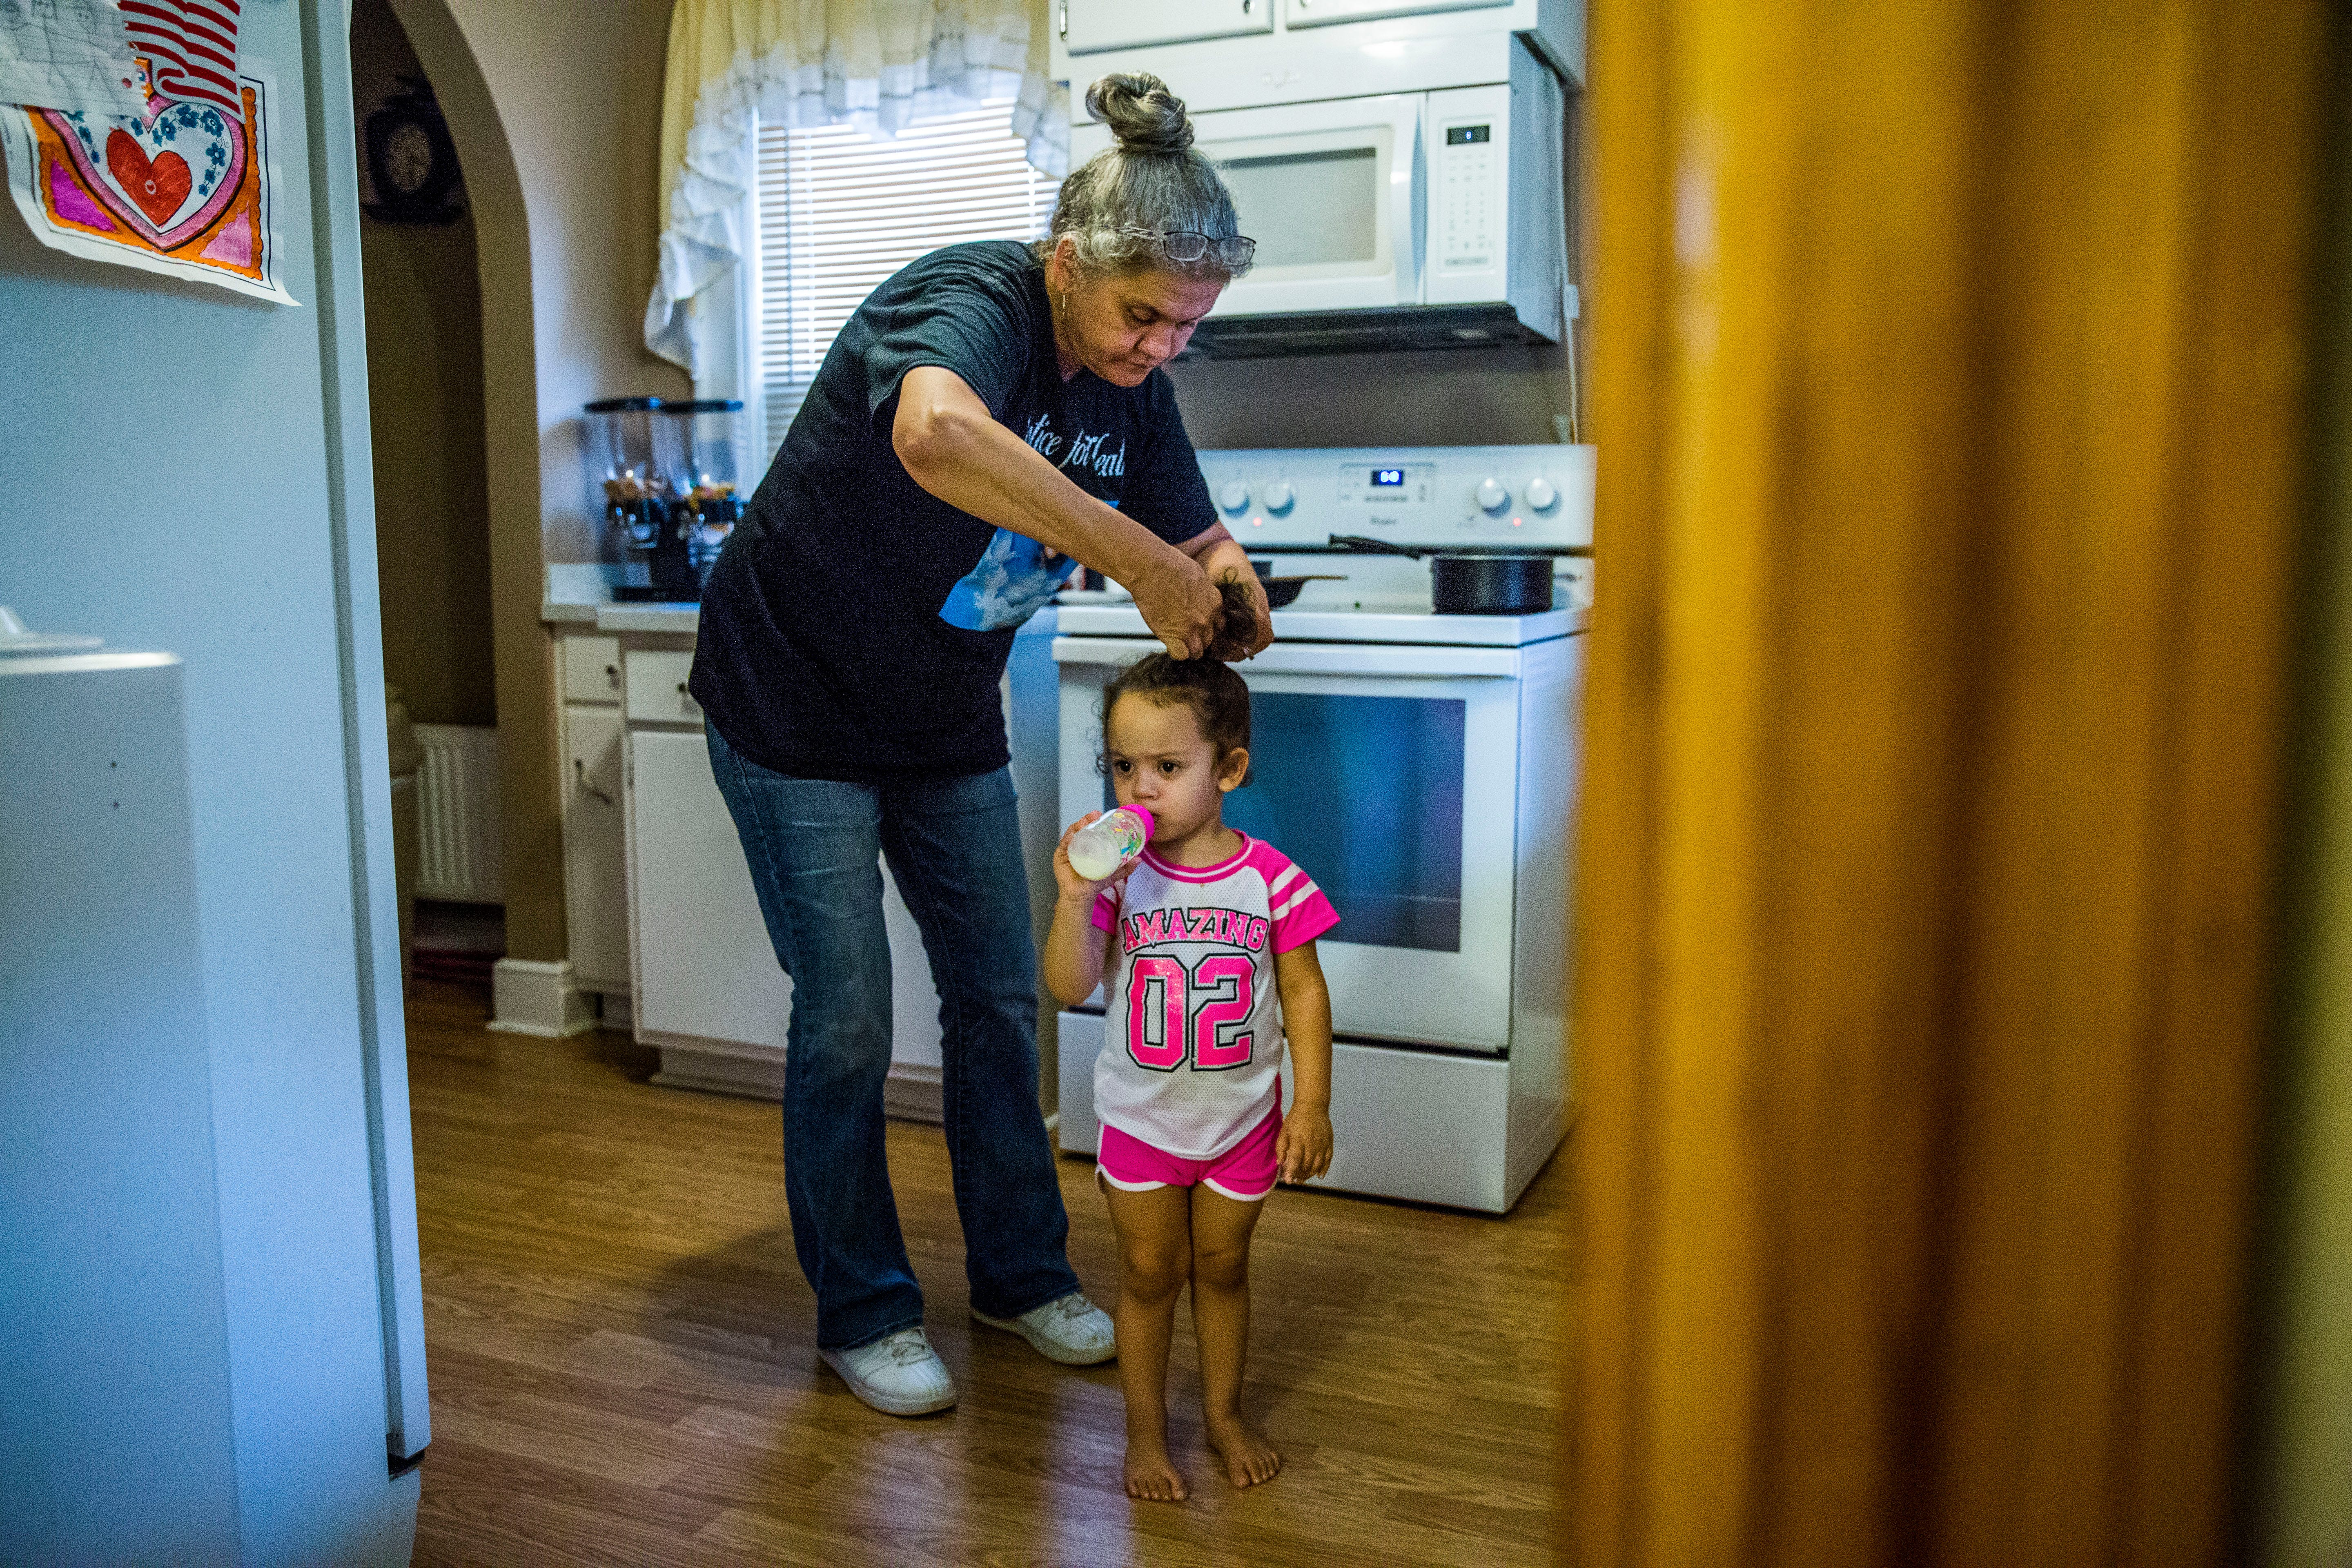 Tammy Meadows now cares for her daughter's two children, Maliya, 2, and Malakhi, 8, in her West Virginia home after her daughter died from complications of cosmetic surgery at a troubled Hialeah, FL, clinic. Heather Meadows, a 29-year-old single mother, was among eight women who died after procedures at the plastic surgery business founded by Dr. Ismael Labrador.